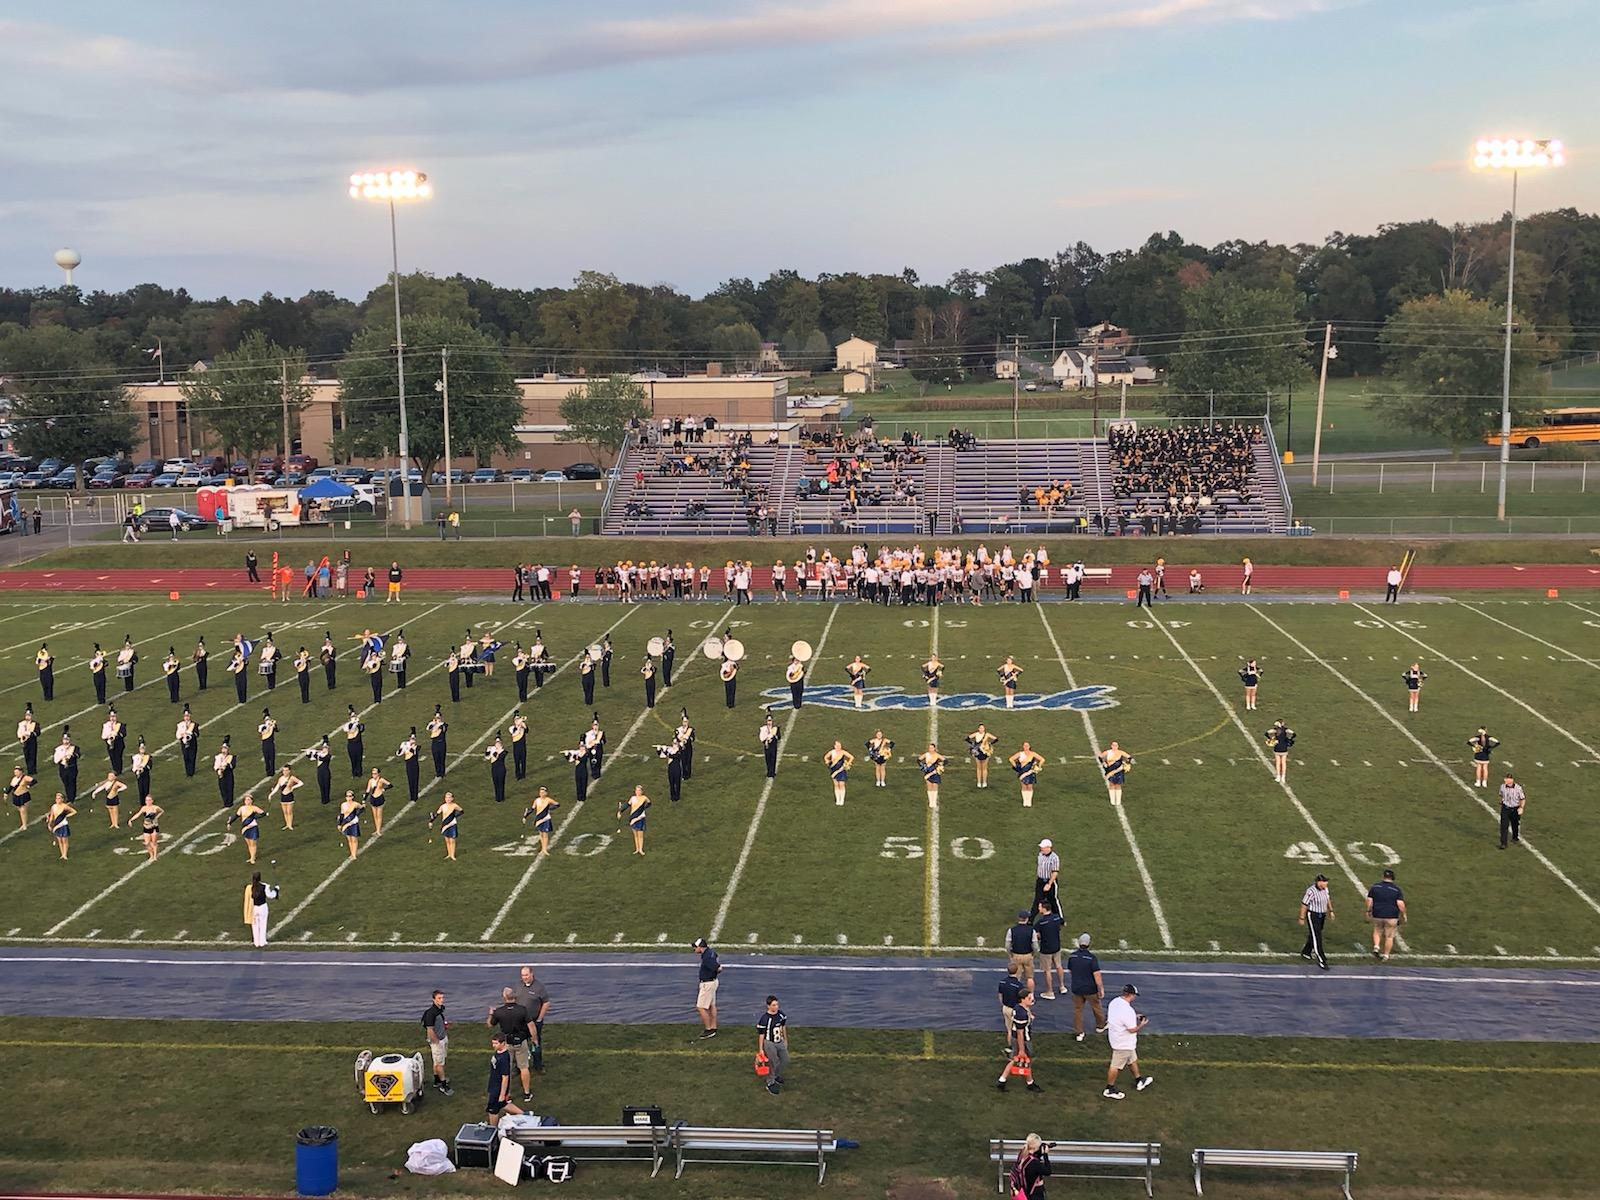 Field with Knoch logo and band